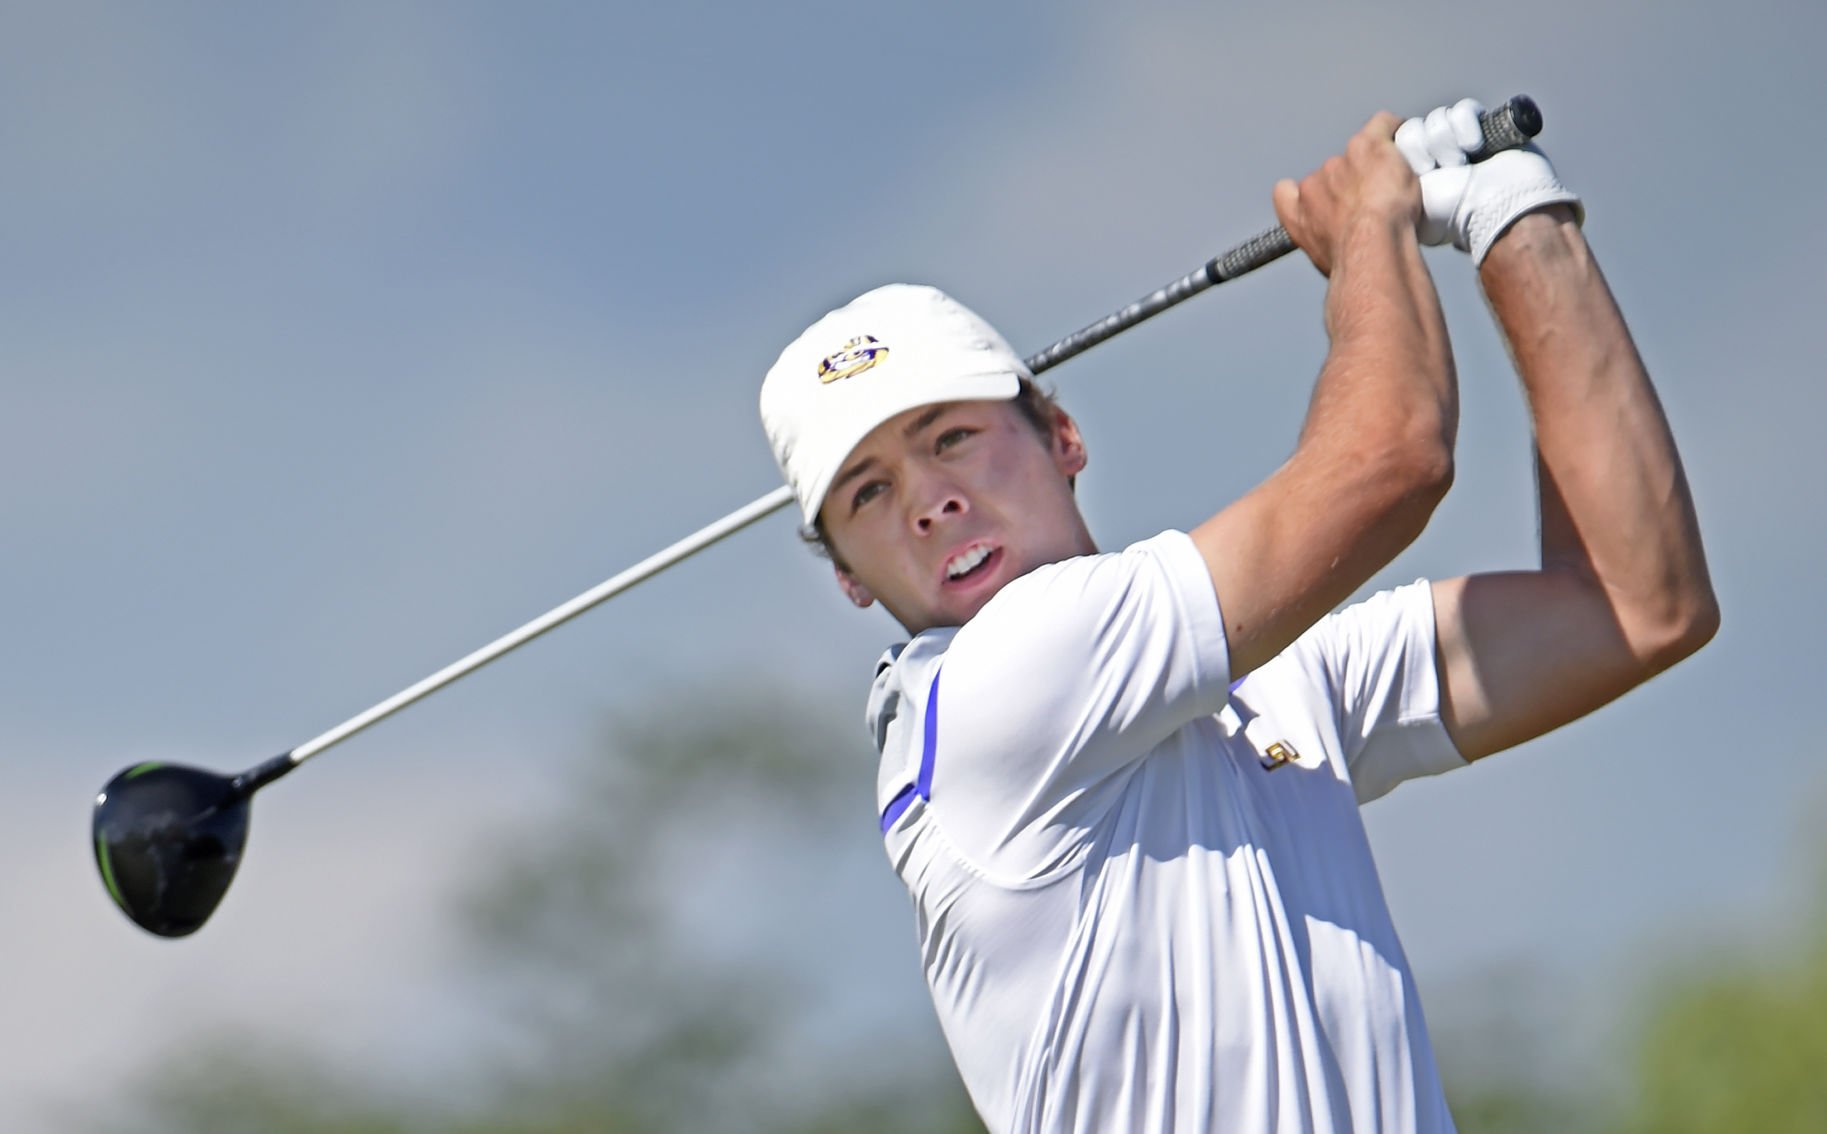 Cole Miller wins regional golf title; PSU advances to NCAA championships